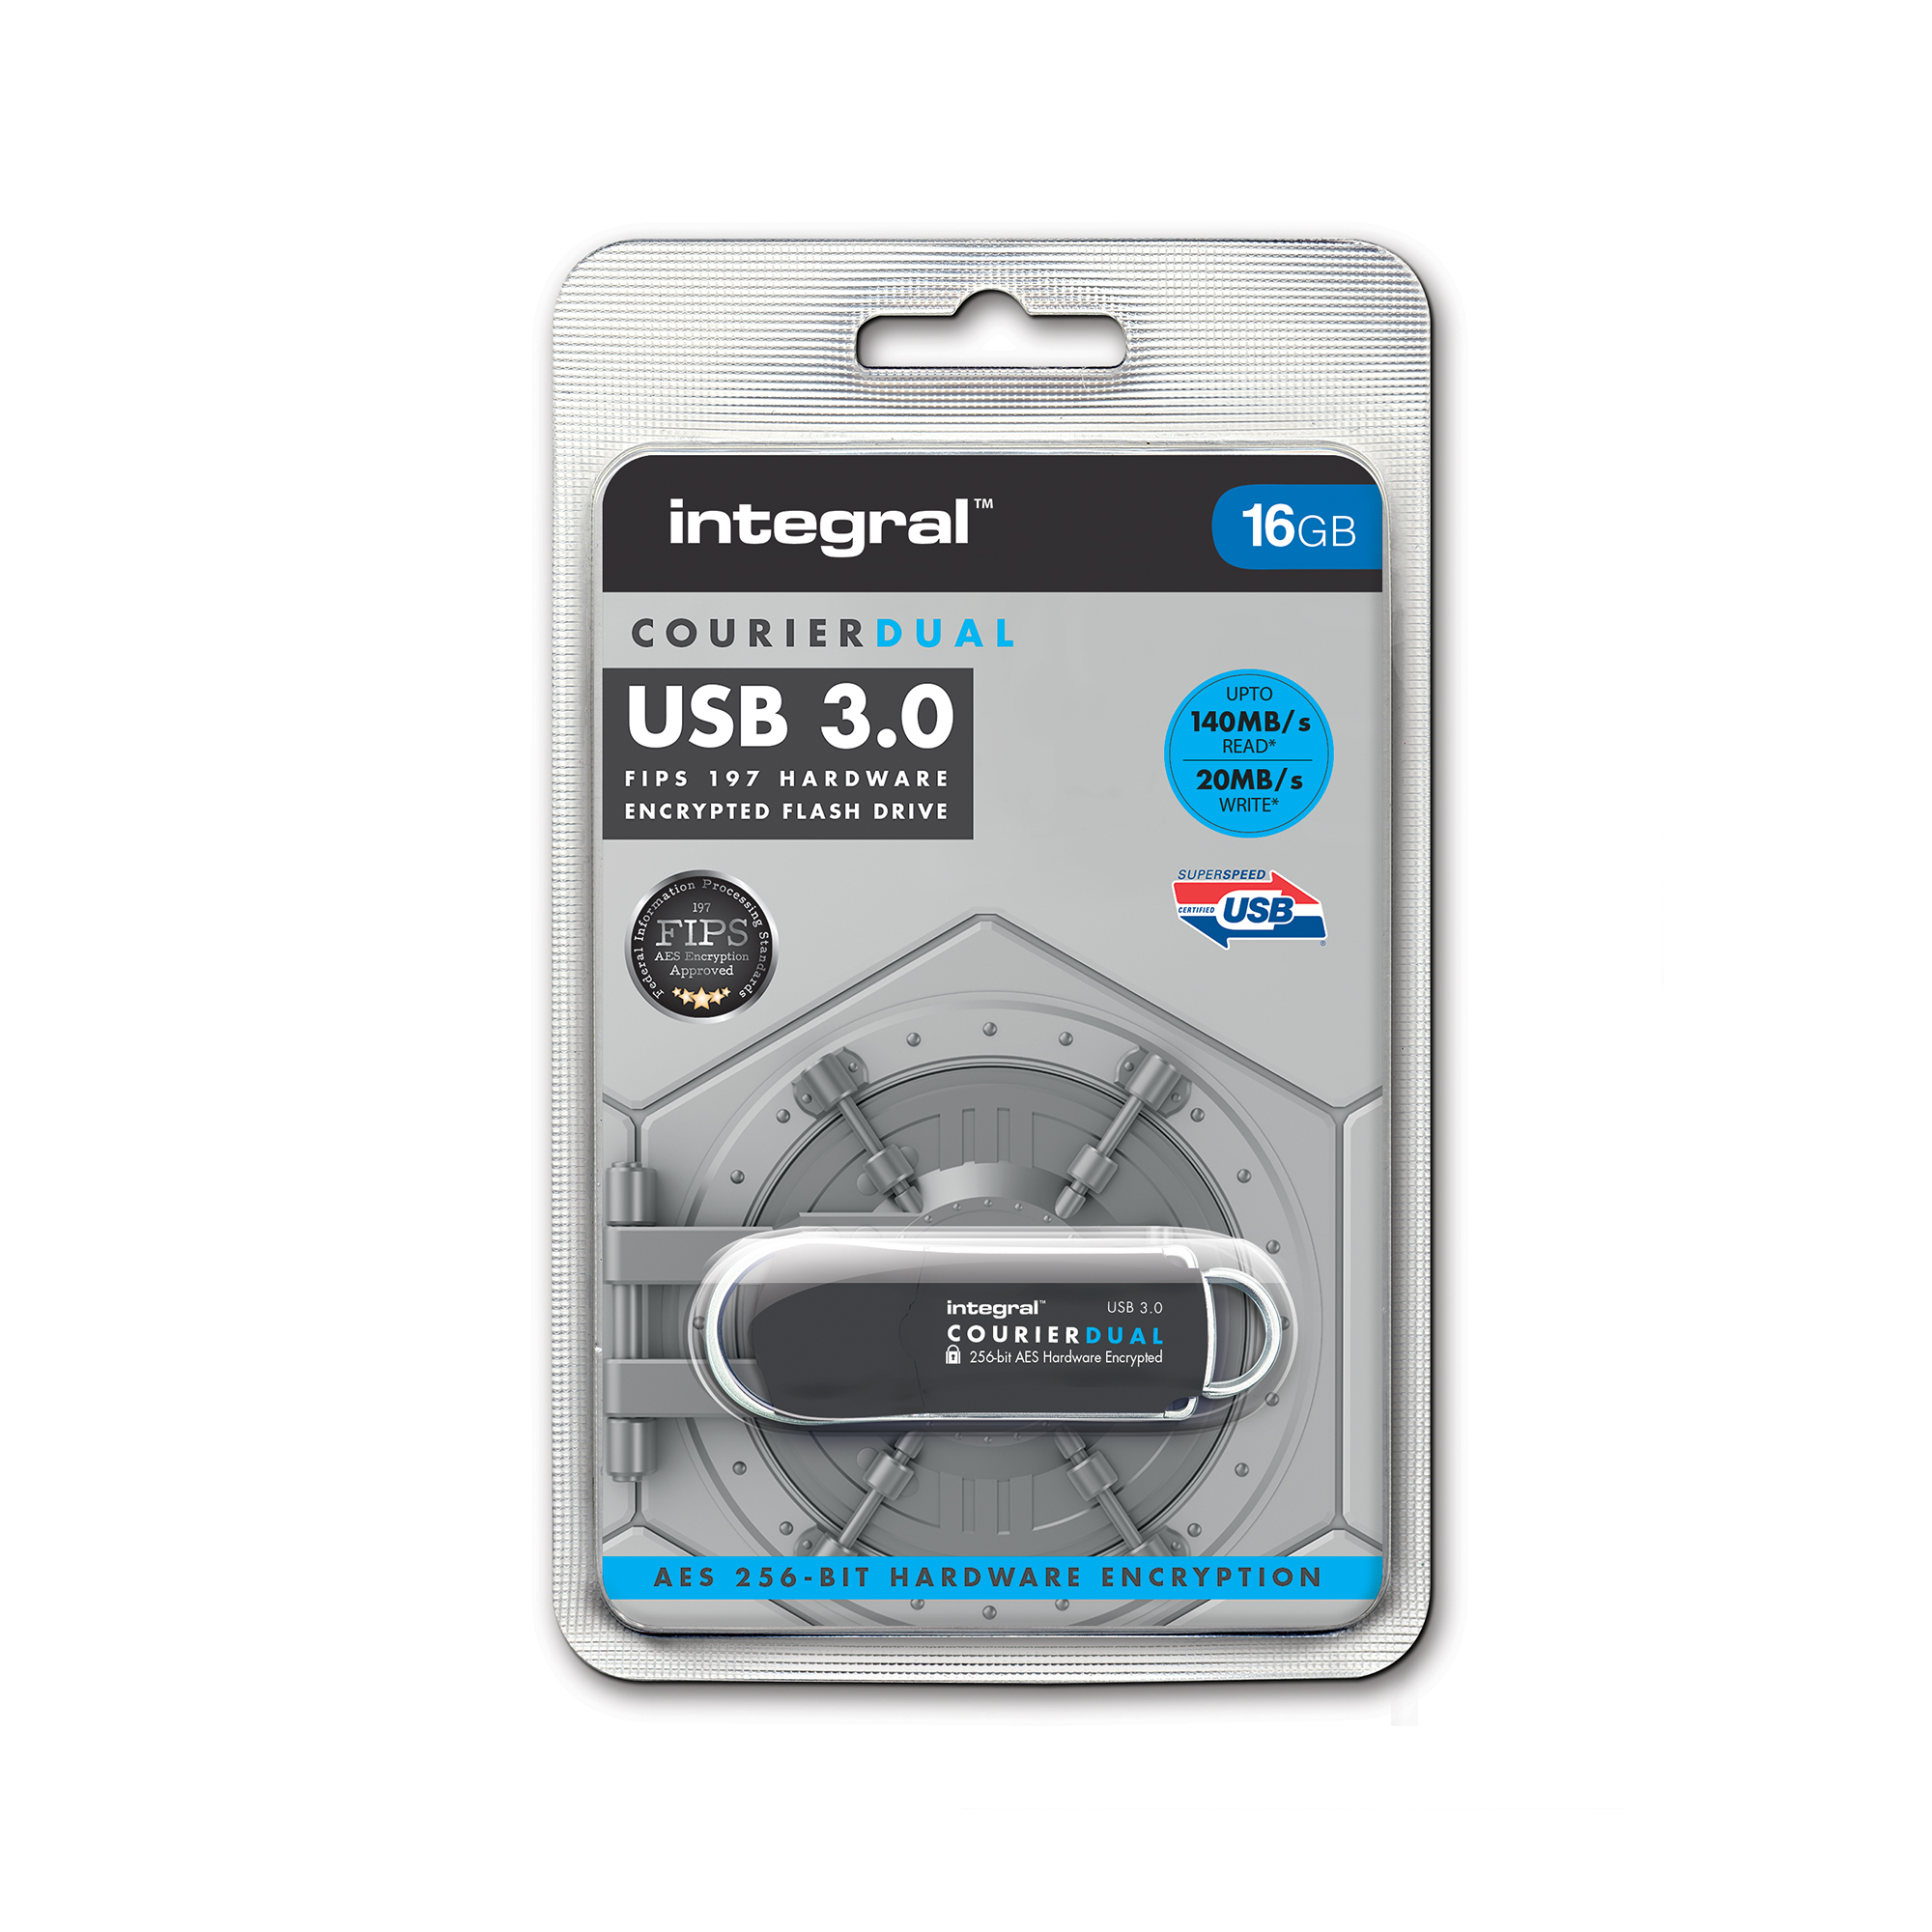 Memory Sticks Integral Courier Dual USB 3.0 FIPS 197 16GB Ref INFD16COUDL3.0-197